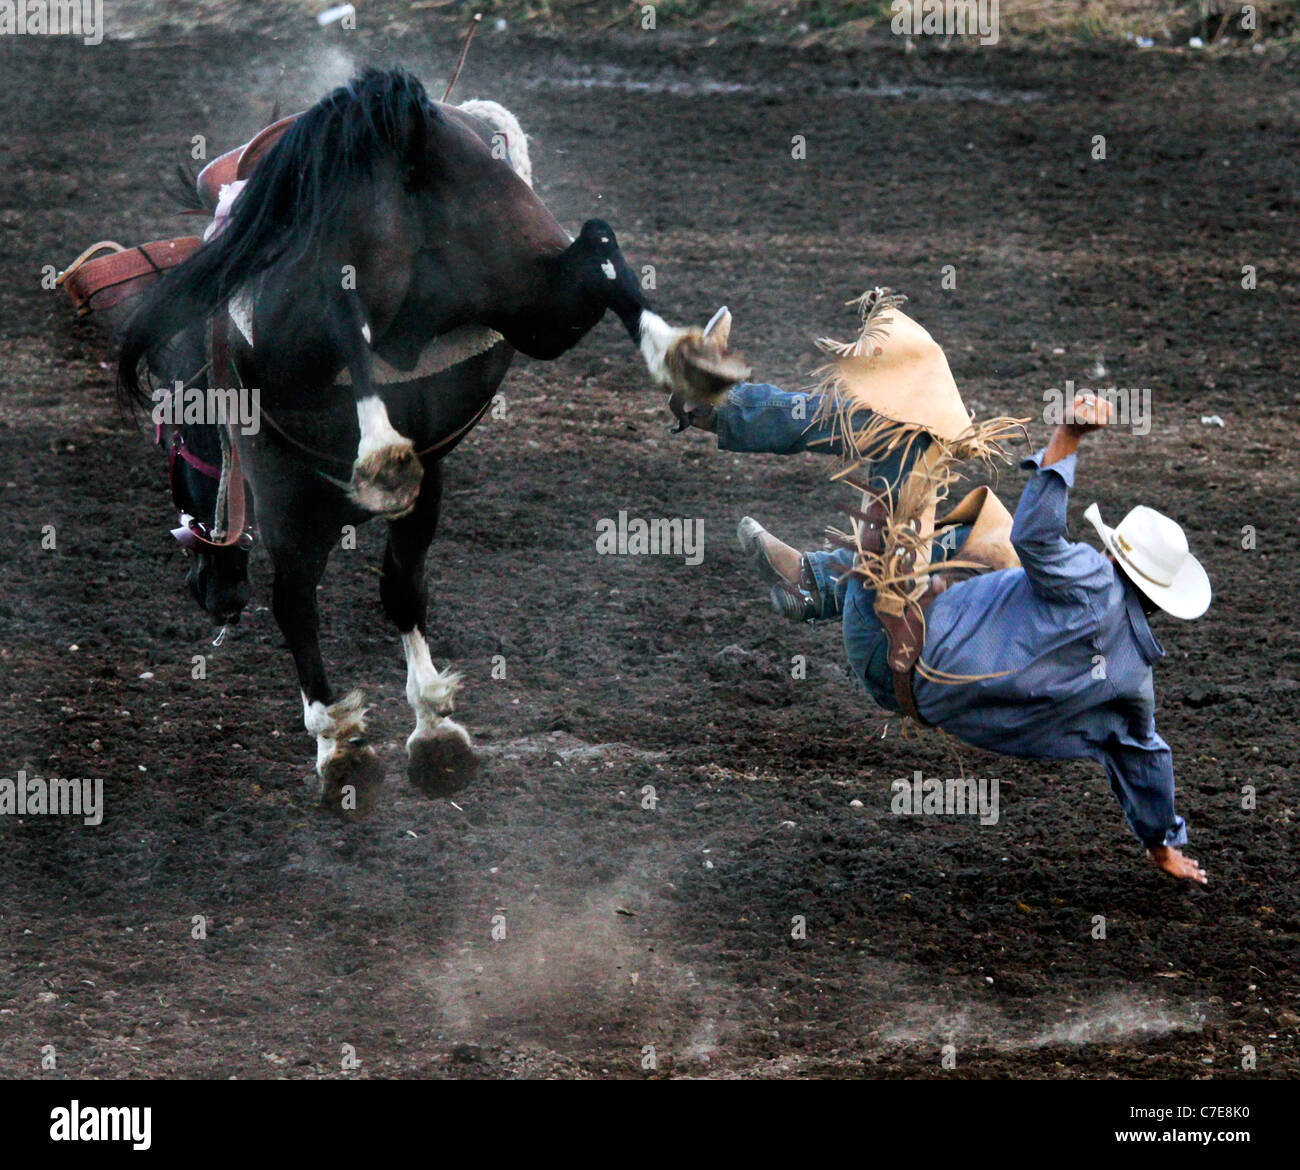 Competitor thrown away from his mount during the bronco riding event of the rodeo held on the Fort Hall reservation - Stock Image